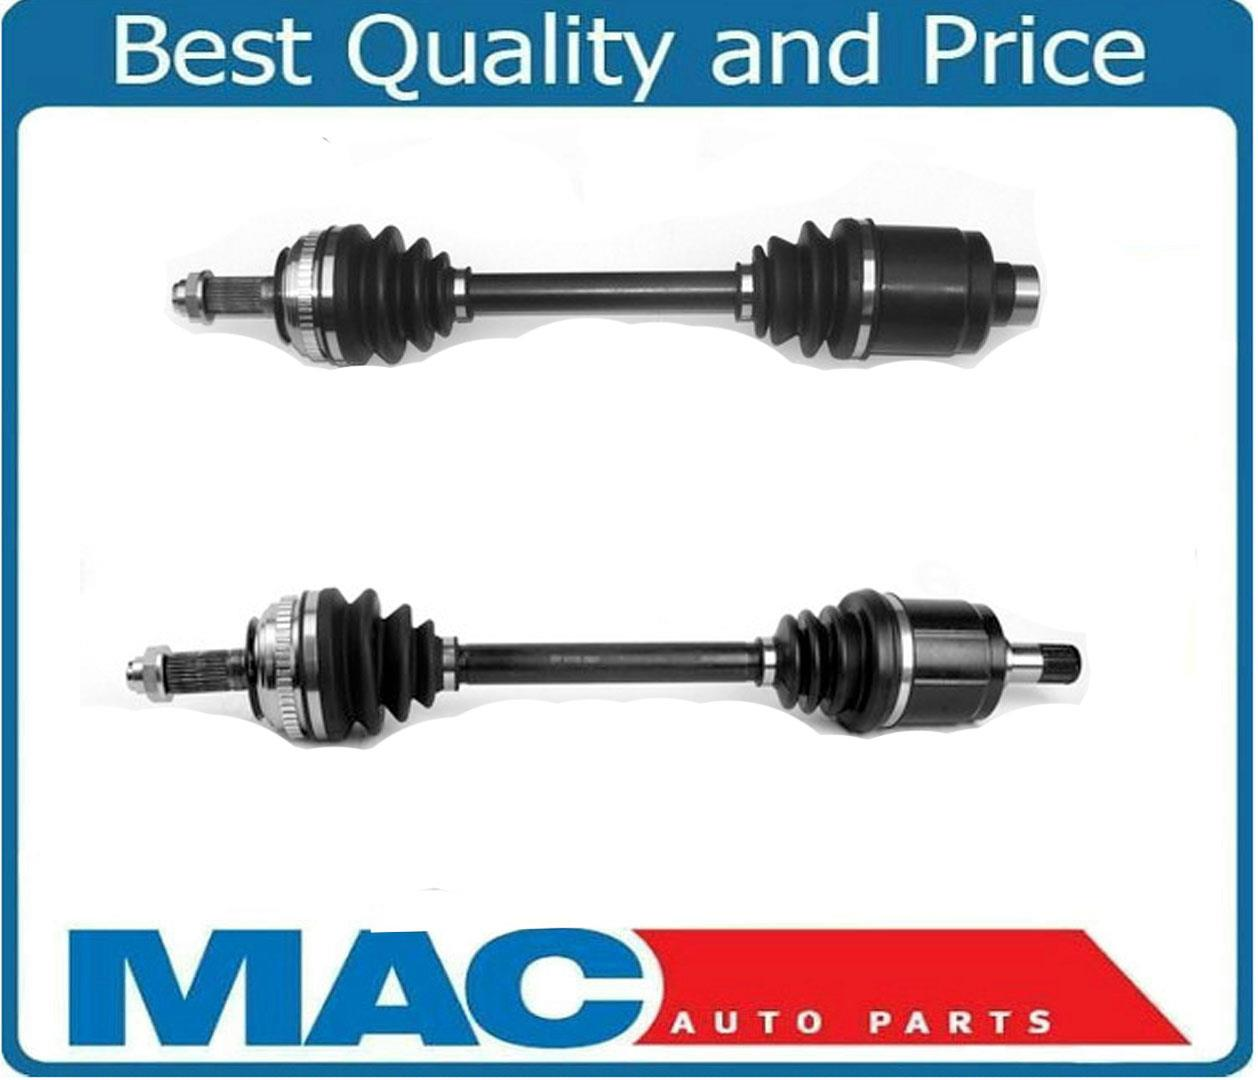 Brand New Set Of Front CV Axles Fits For Acura Integra 1